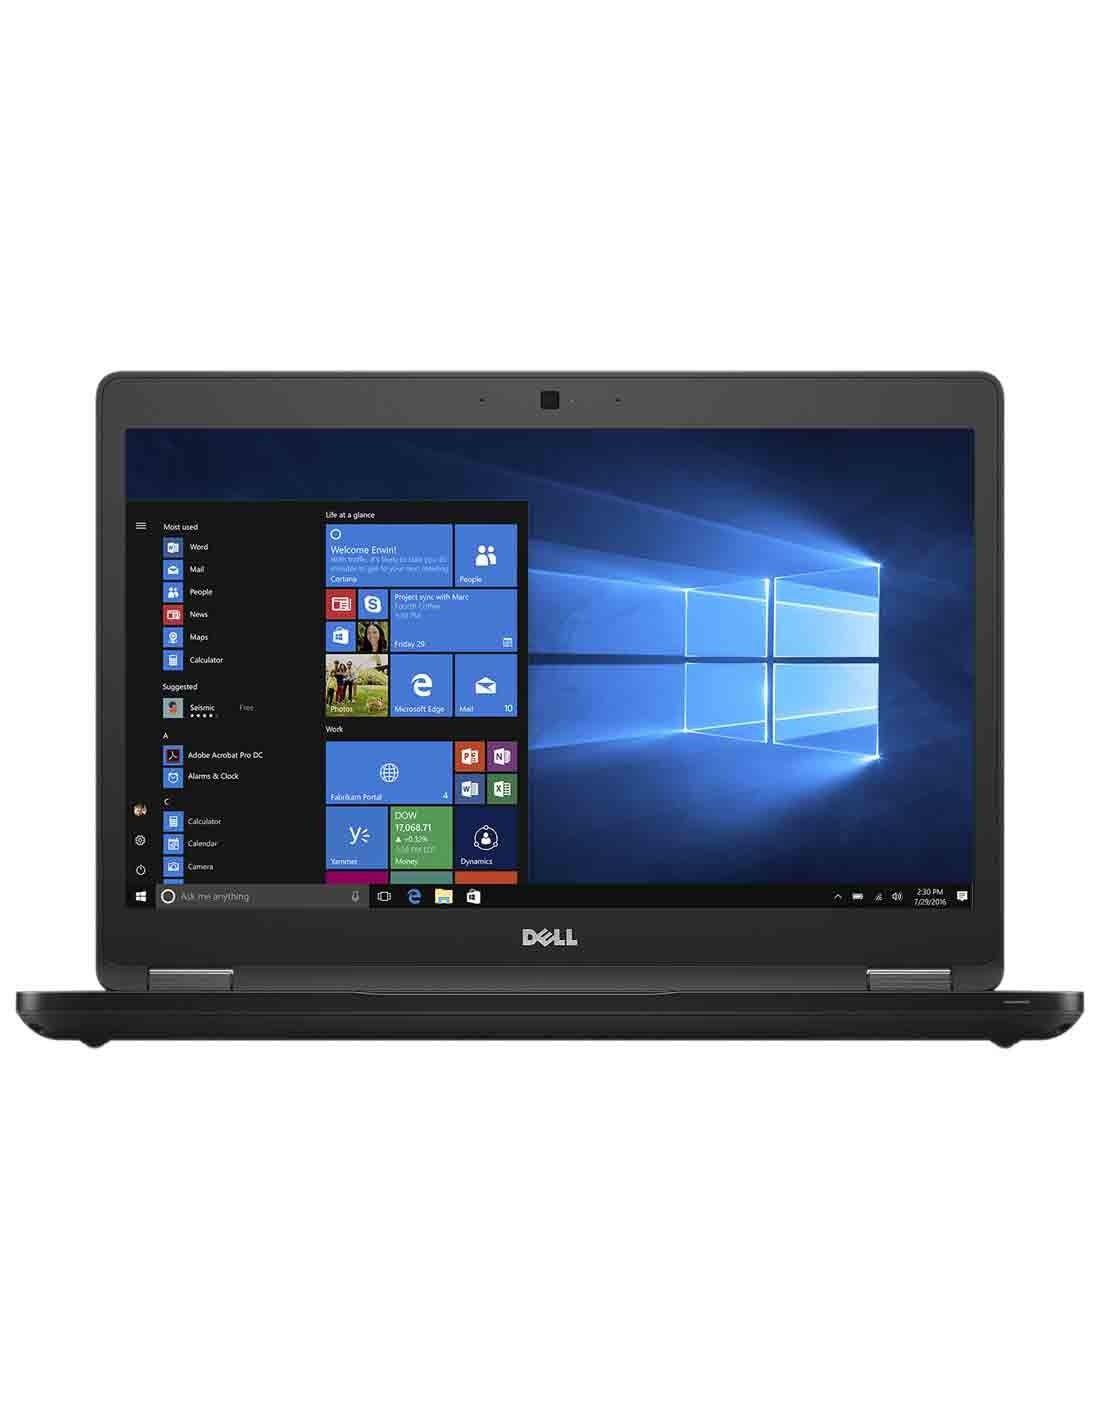 Dell Latitude 5480 Notebook 8GB at the cheapest price and fast free delivery in Dubai, UAE